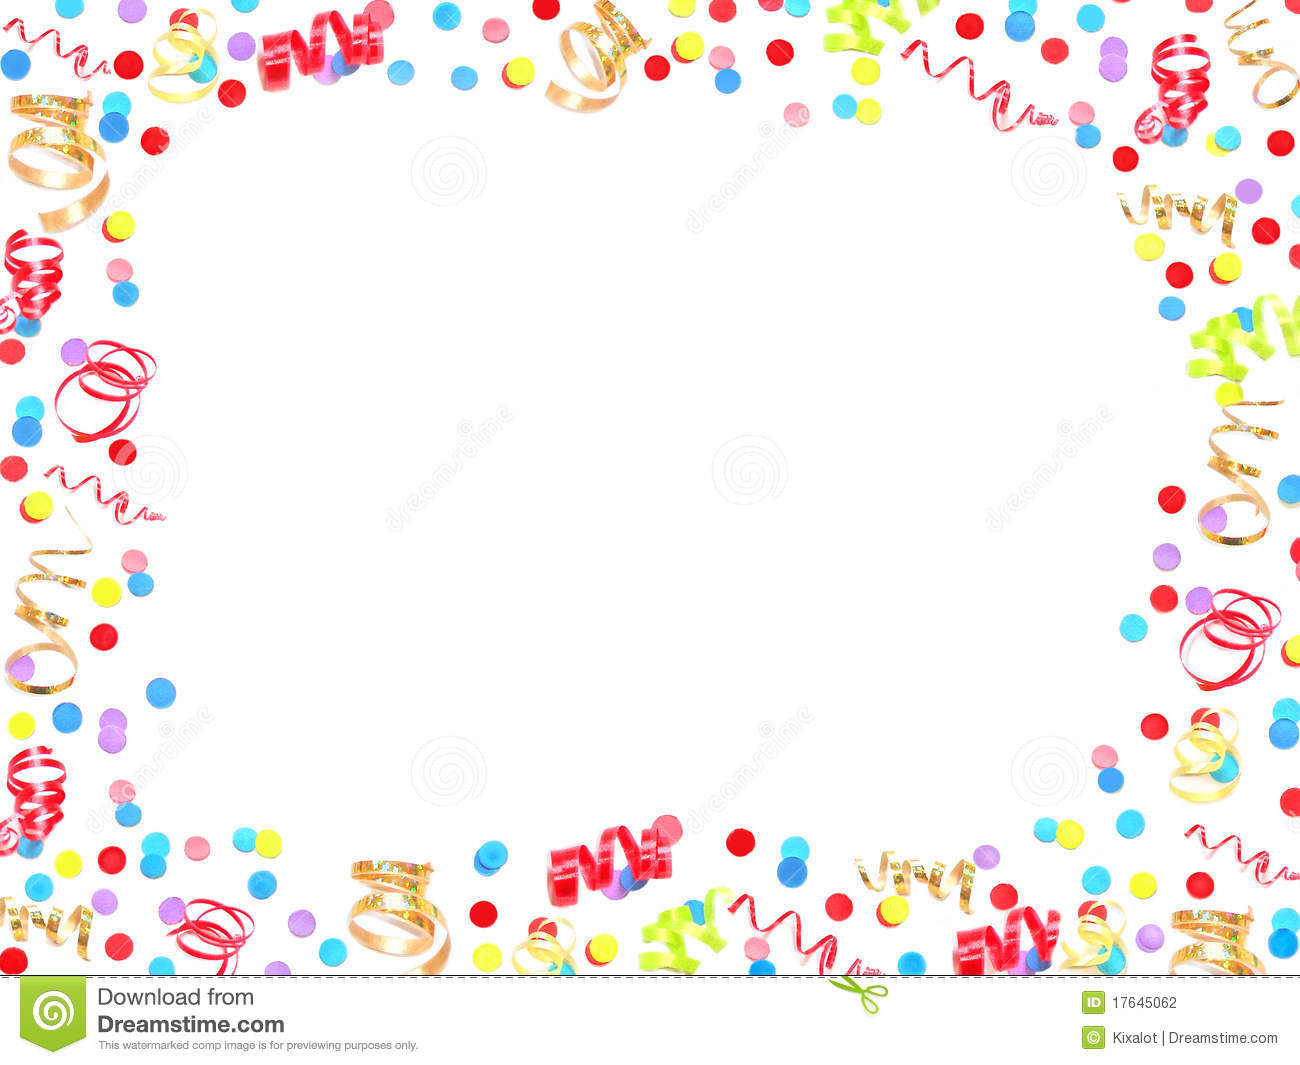 birthday party page borders ; party-clip-art-borders-clip-art-retirement-borders-2